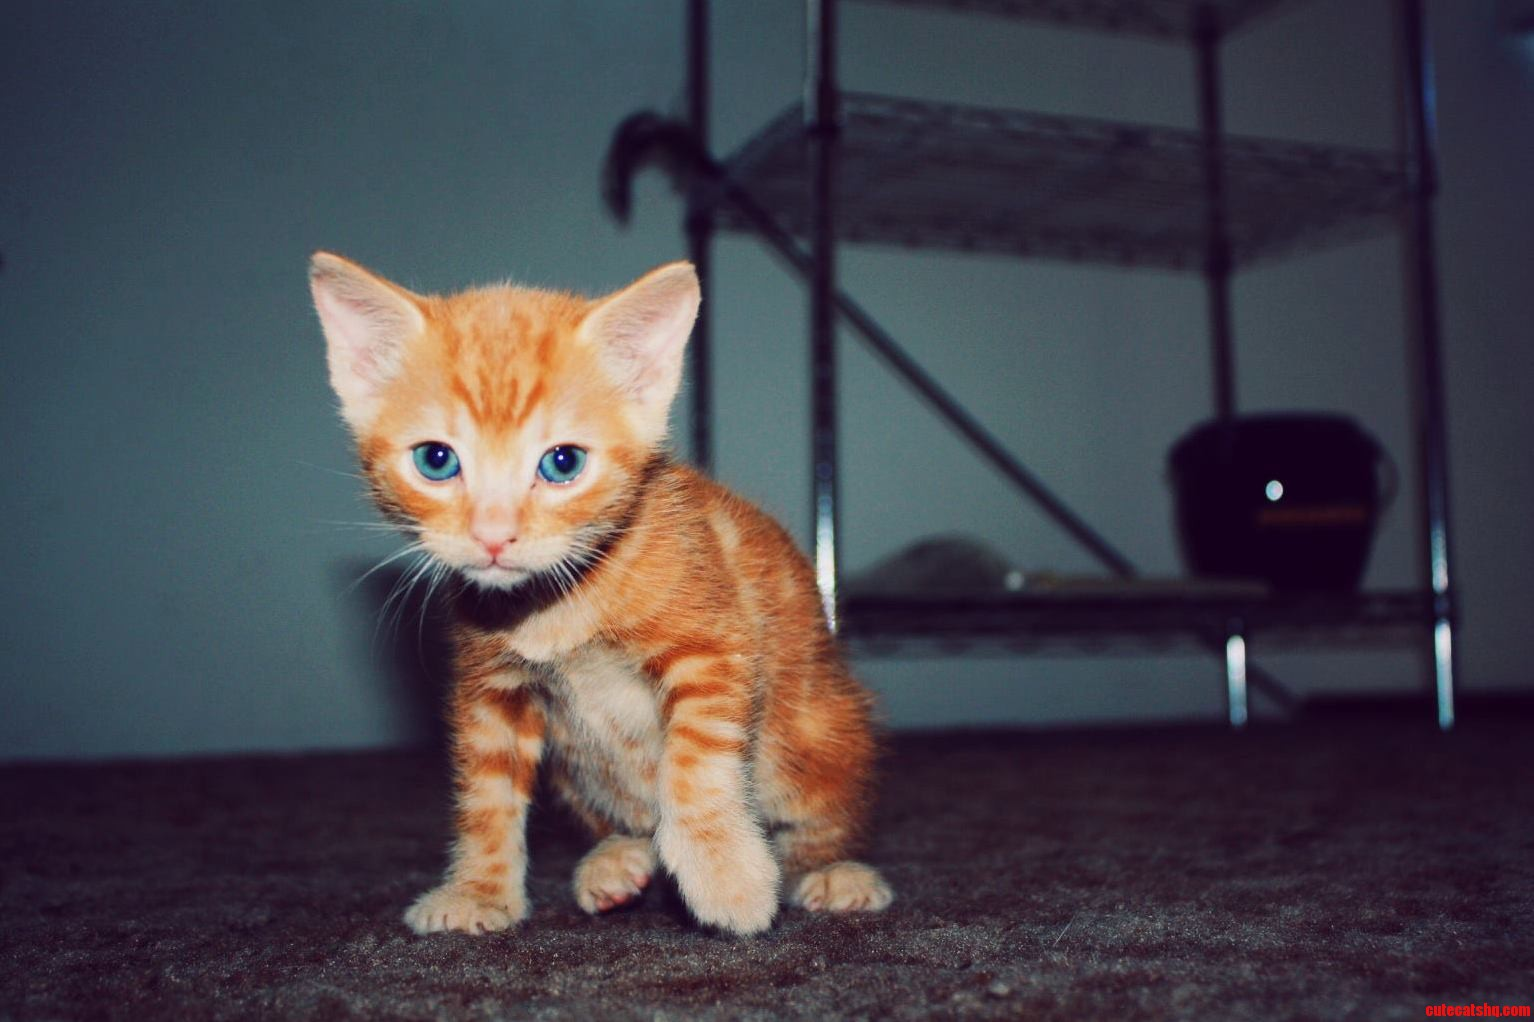 Orange Female Kitten Anyone This Is Honey She Is 6 Weeks Old And As Feisty As She Looks.